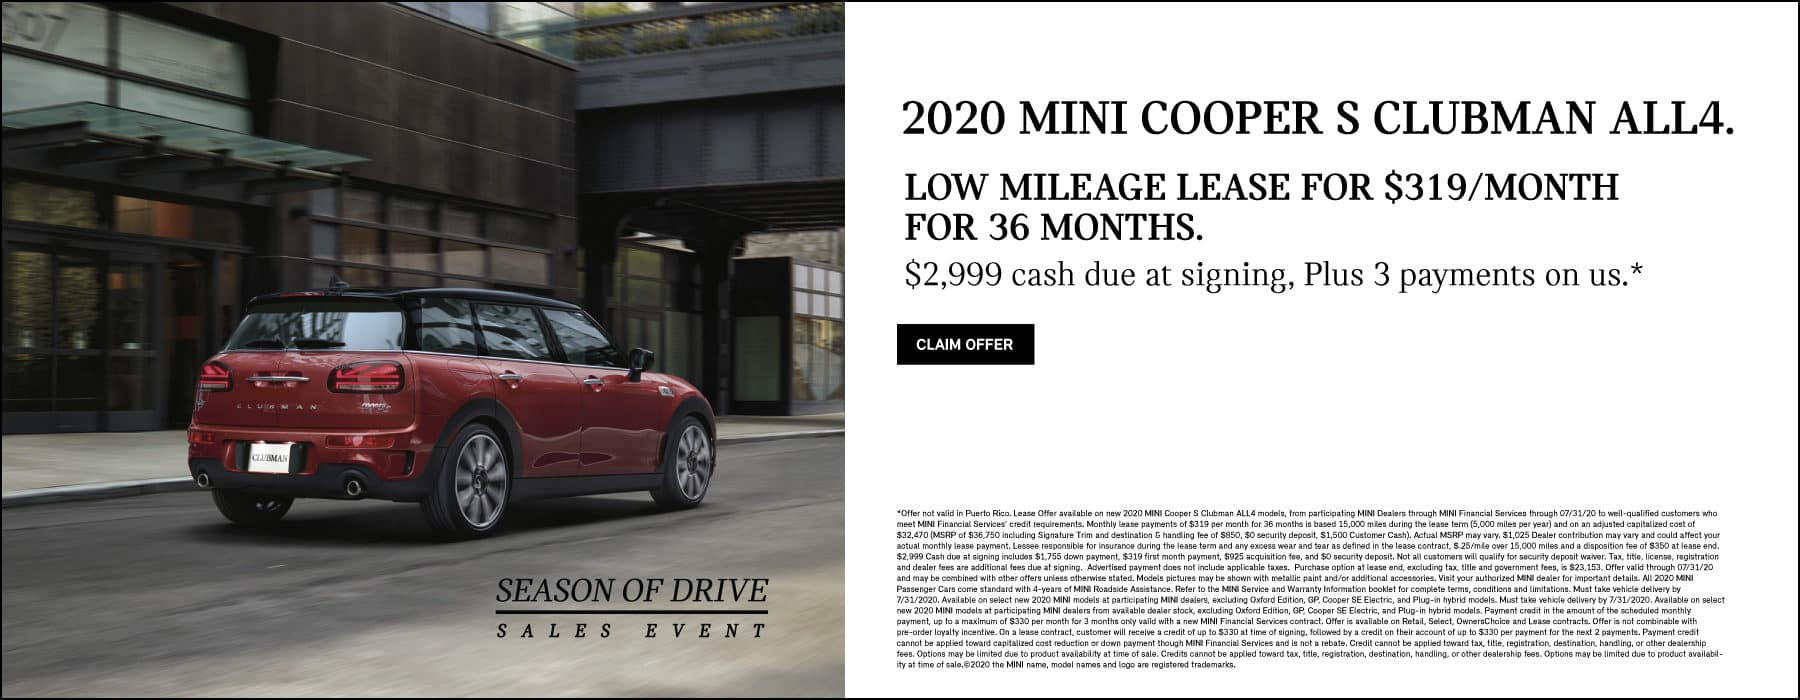 MINI COOPER S CLUBMAN ALL4 #319/MONTH FOR 36 MONTHS